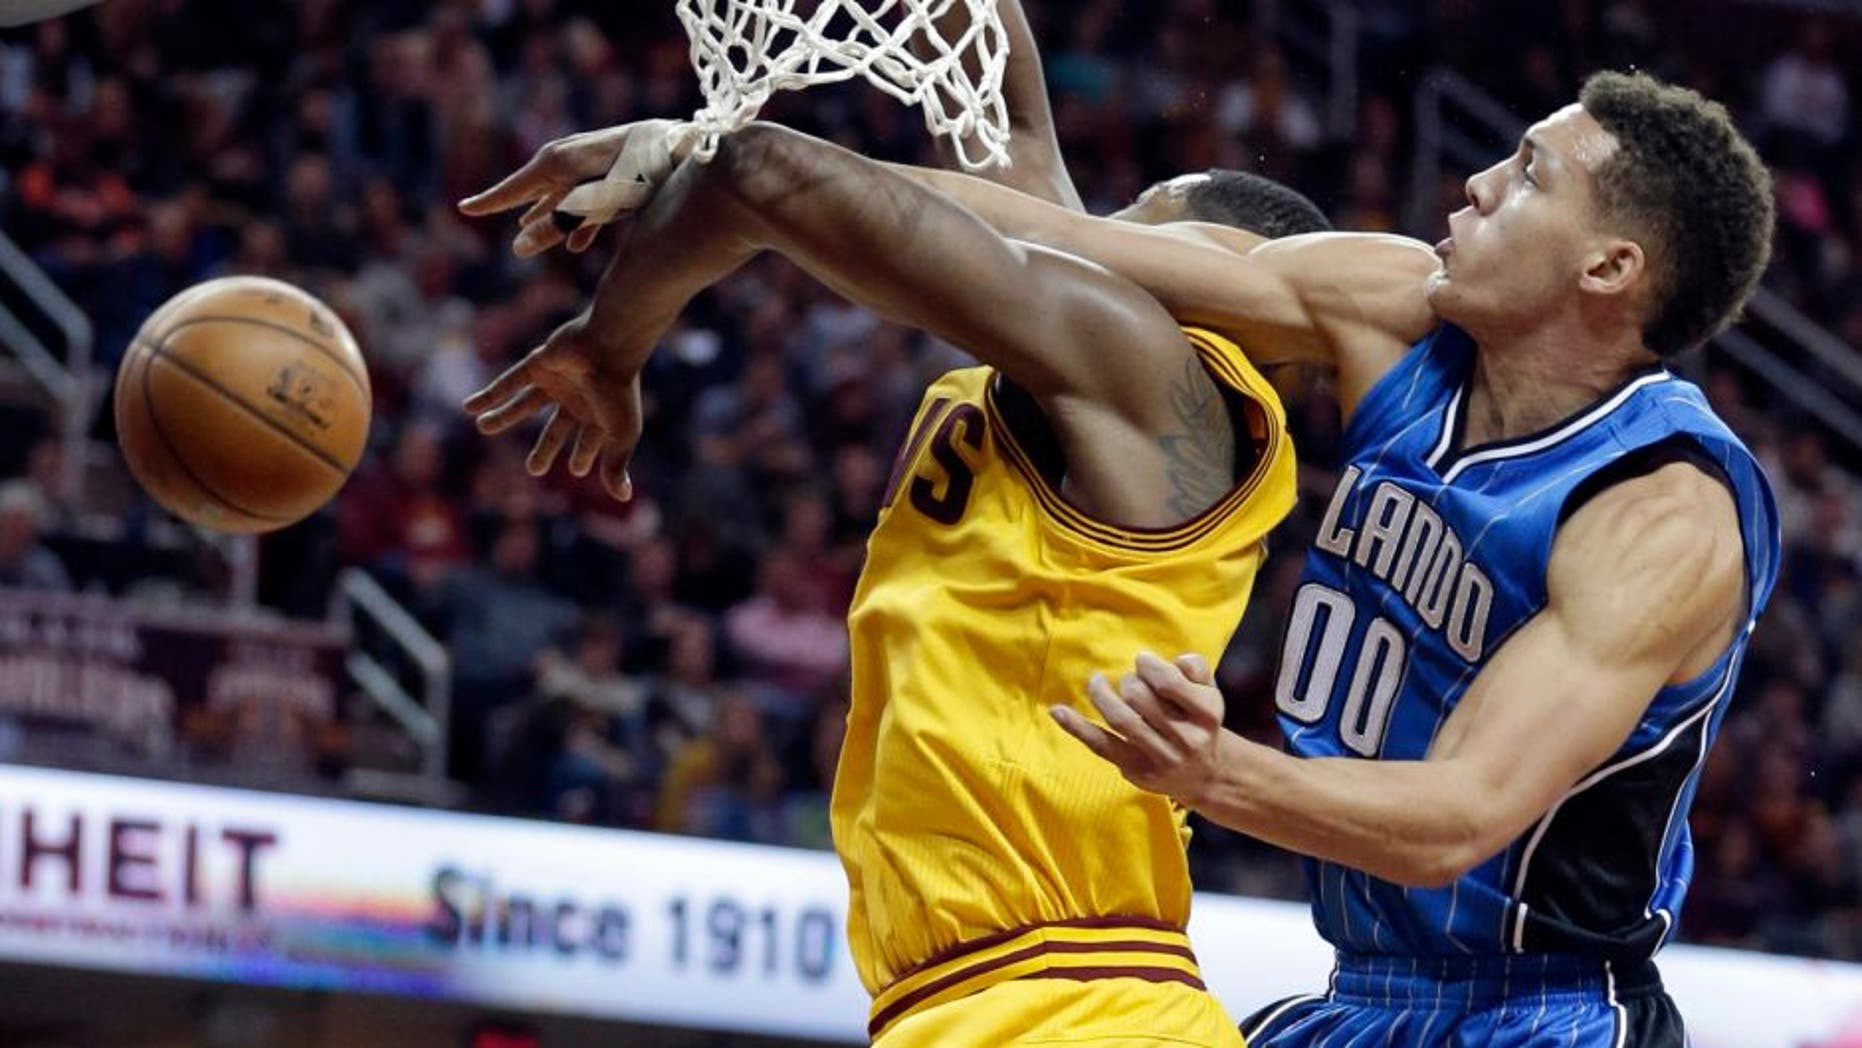 Orlando Magic's Aaron Gordon, right, knocks the ball loose from Cleveland Cavaliers' Tristan Thompson, from Canada, in the first half of an NBA basketball game Saturday, Jan. 2, 2016, in Cleveland. (AP Photo/Tony Dejak)